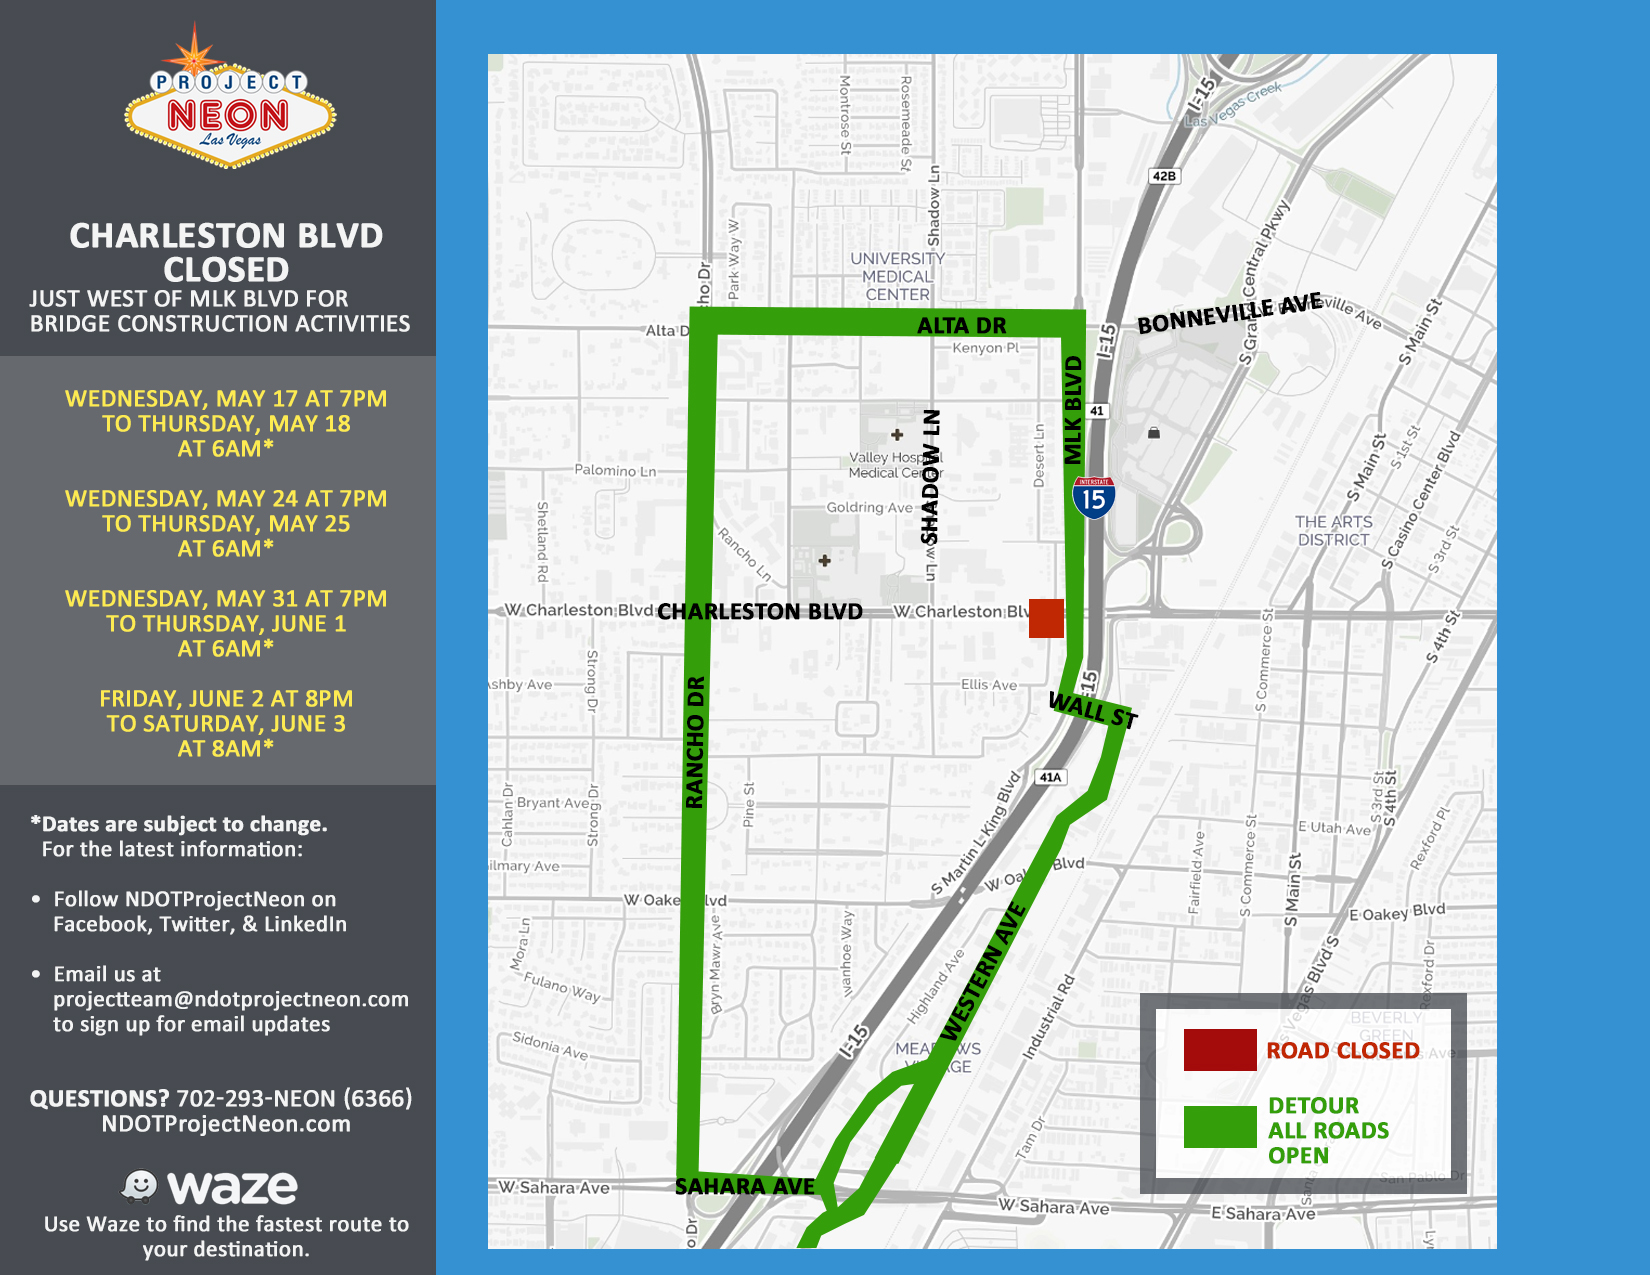 Charleston full closures 5-17-17a